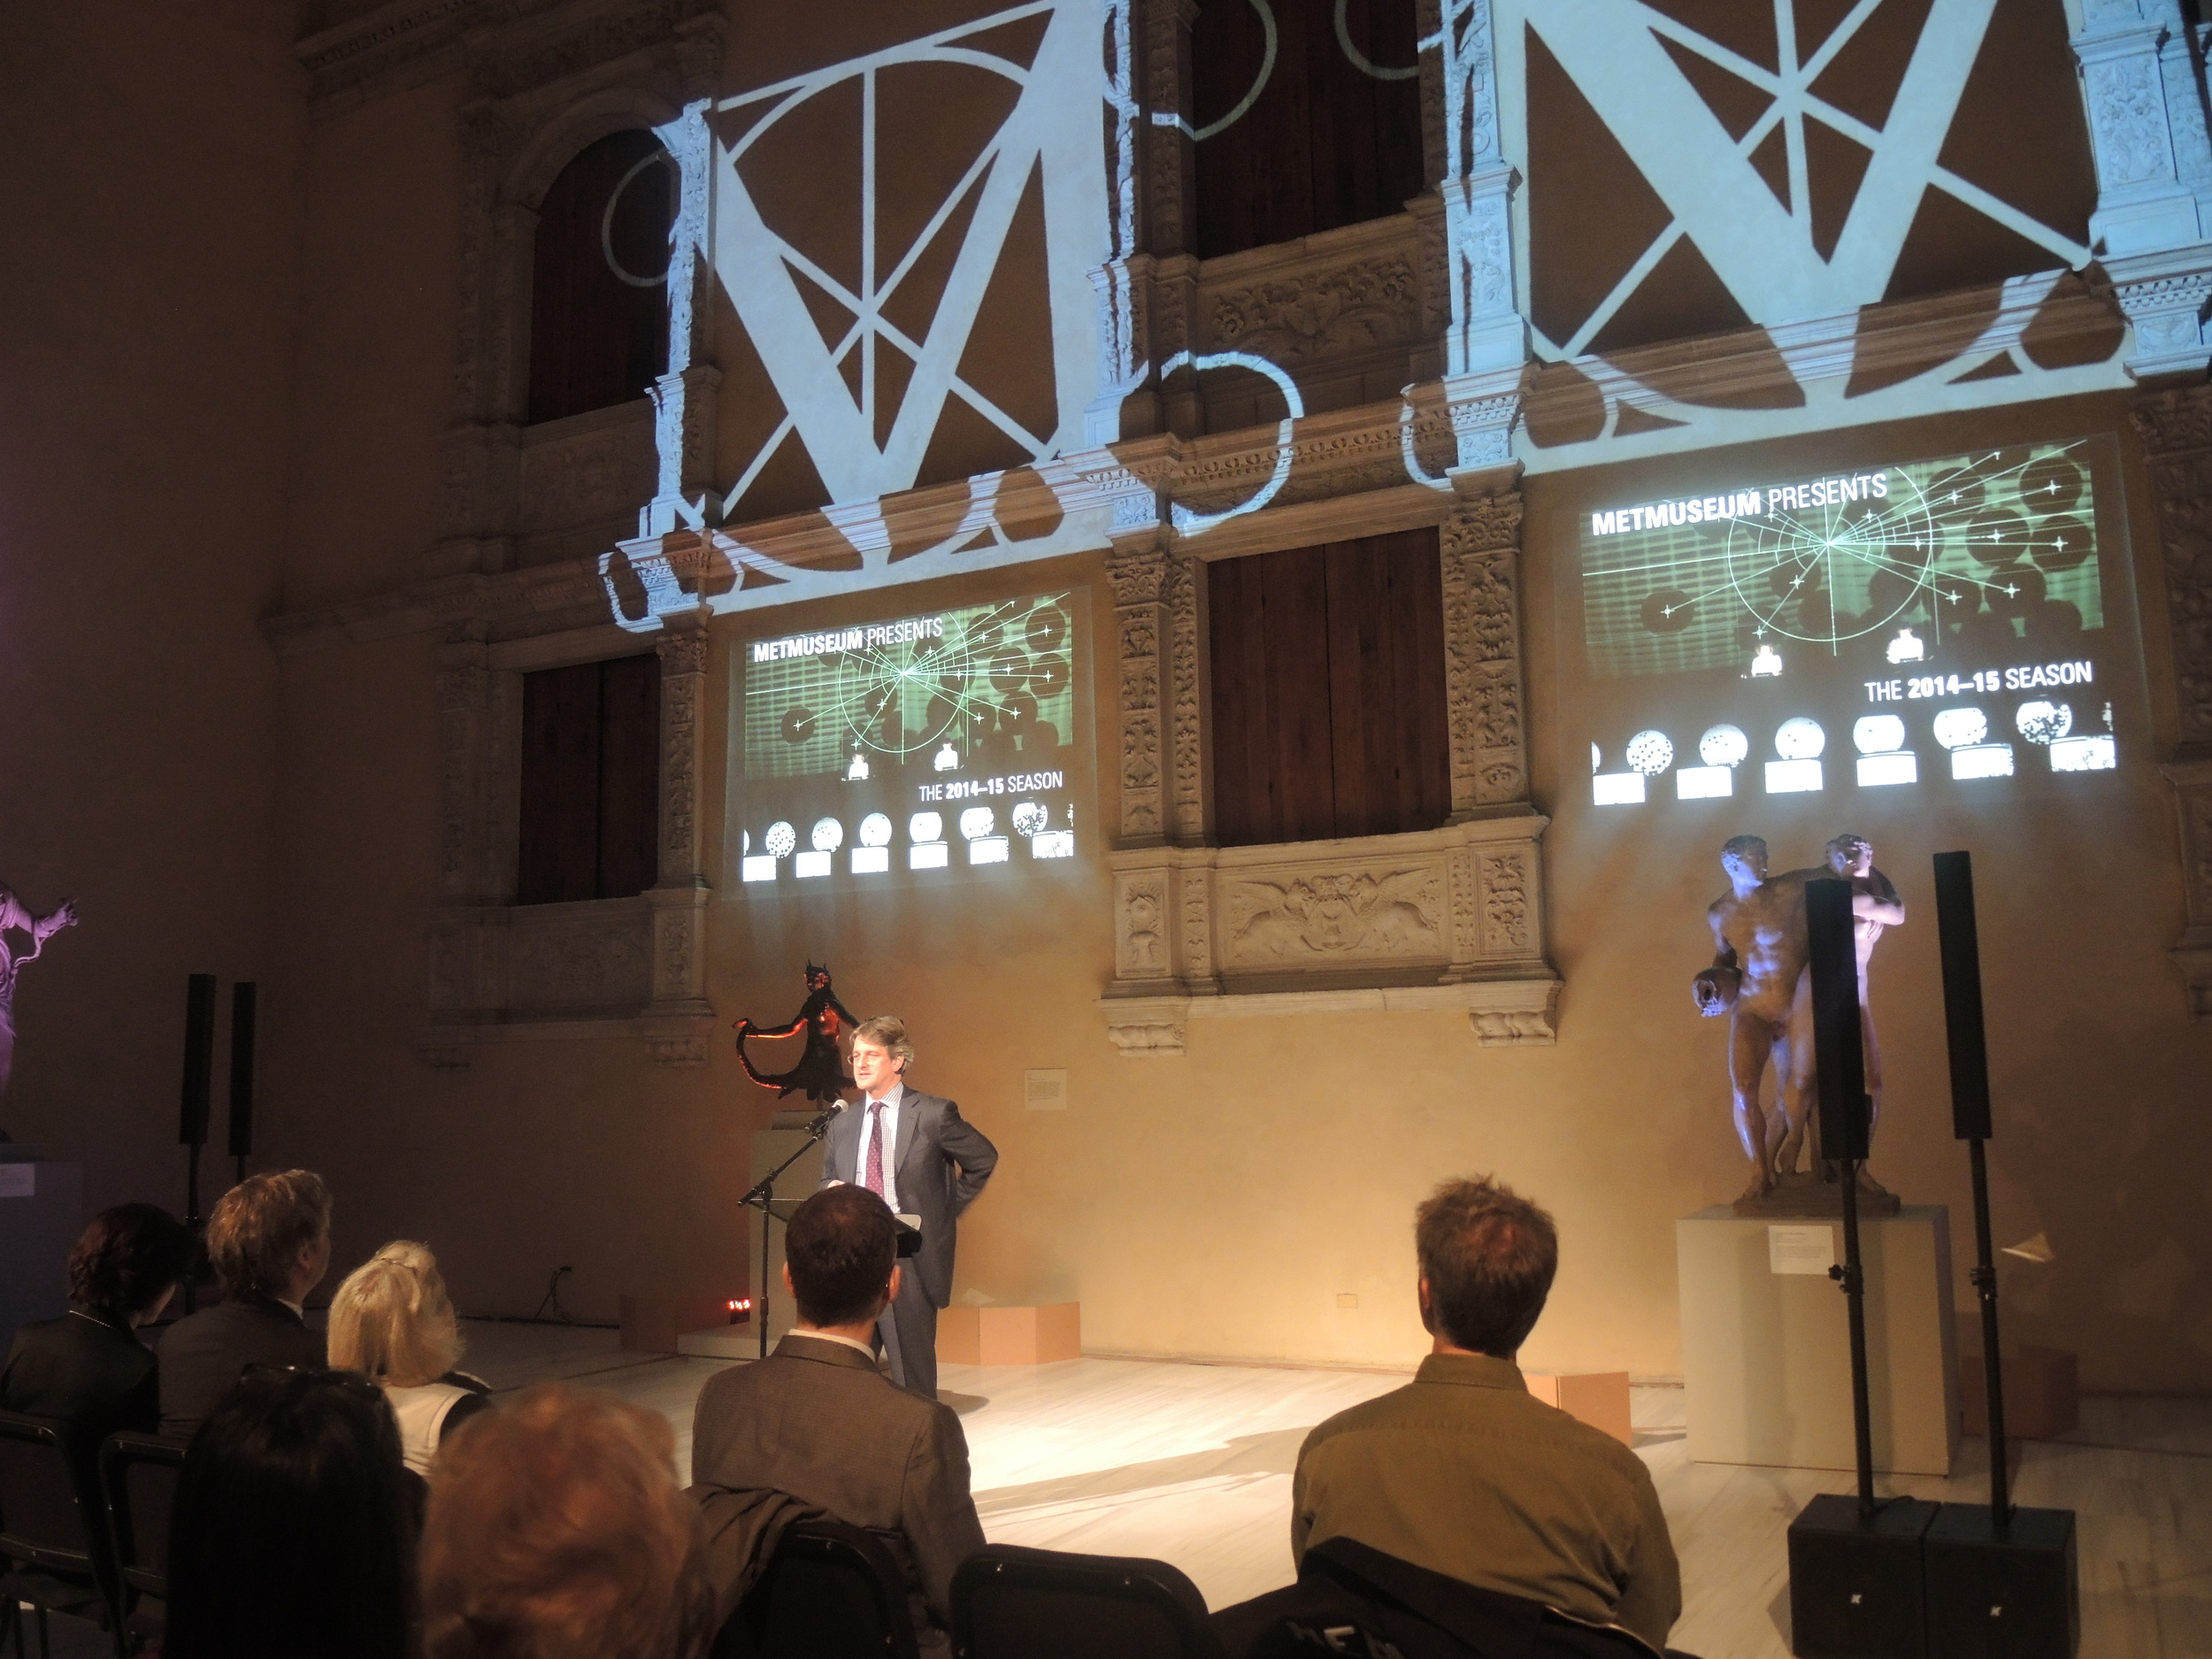 Director Thomas P. Campbell introduces the event